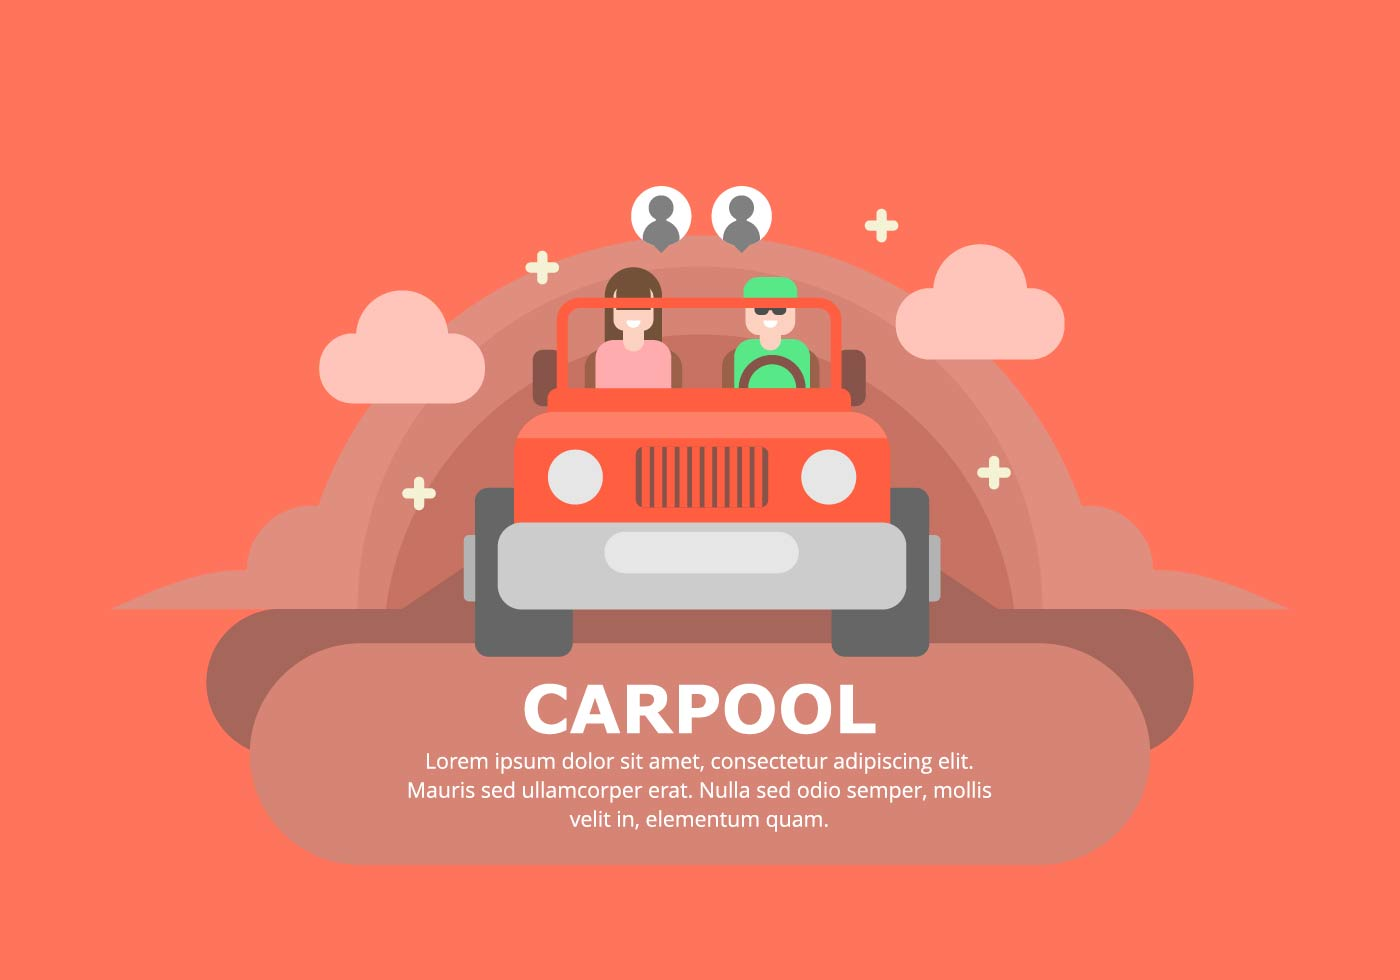 Carpool Background Download Free Vector Art Stock